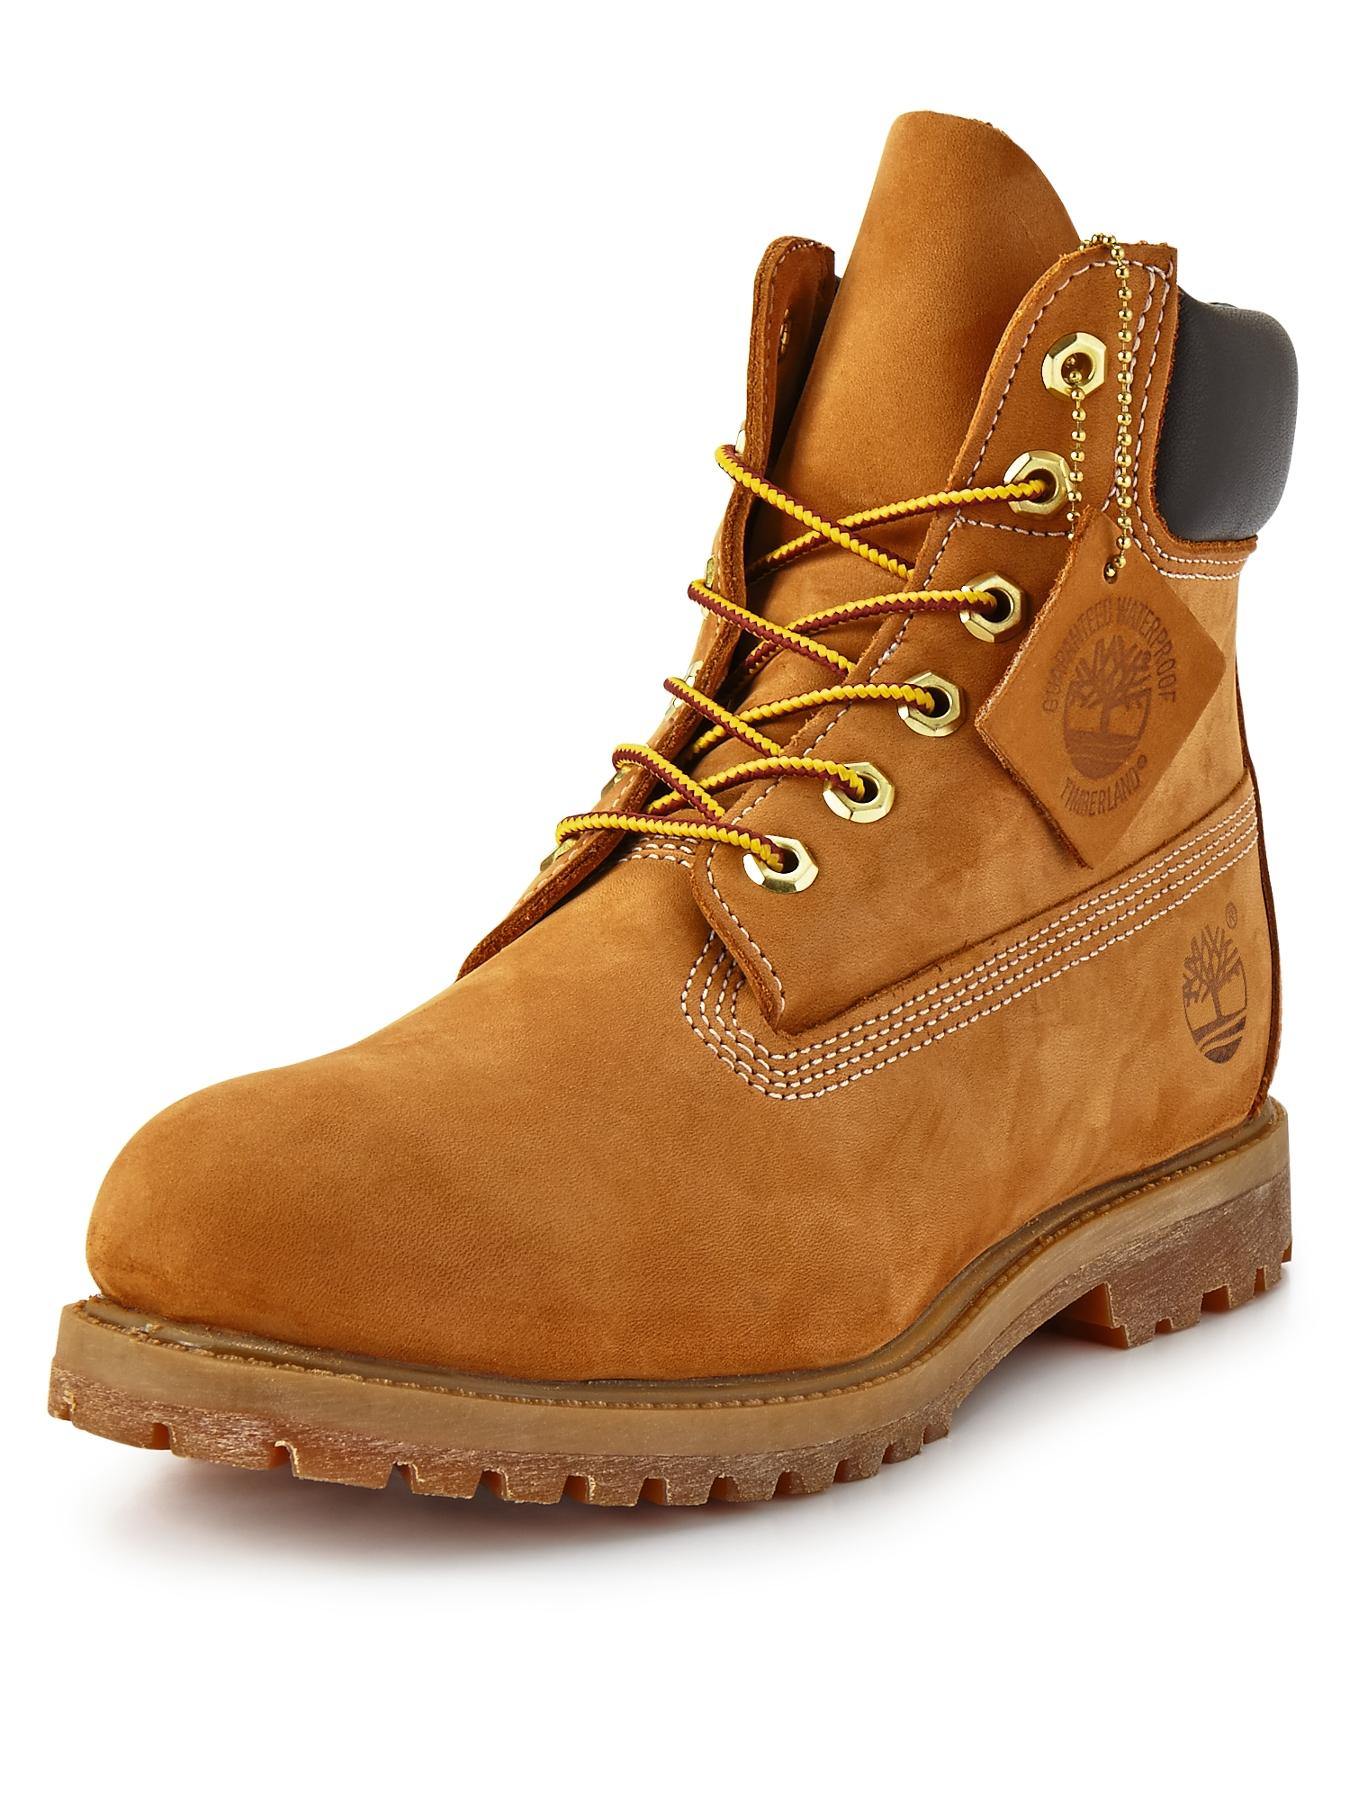 6 inch Premium Classic Ladies Boots, Wheat